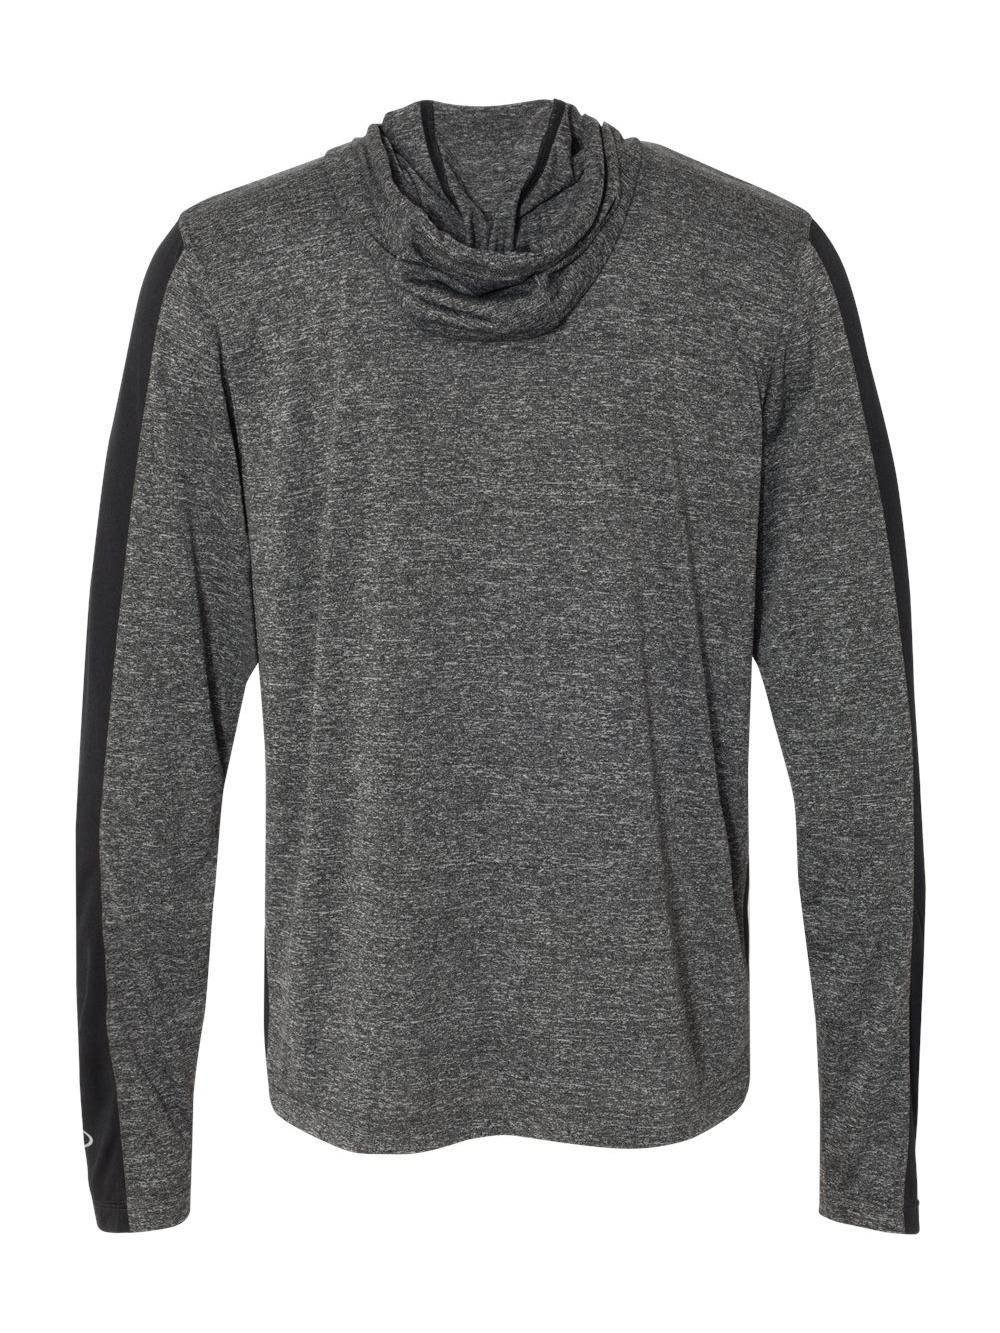 Rawlings-Performance-Cationic-Hooded-Pullover-T-Shirt-8199 thumbnail 4